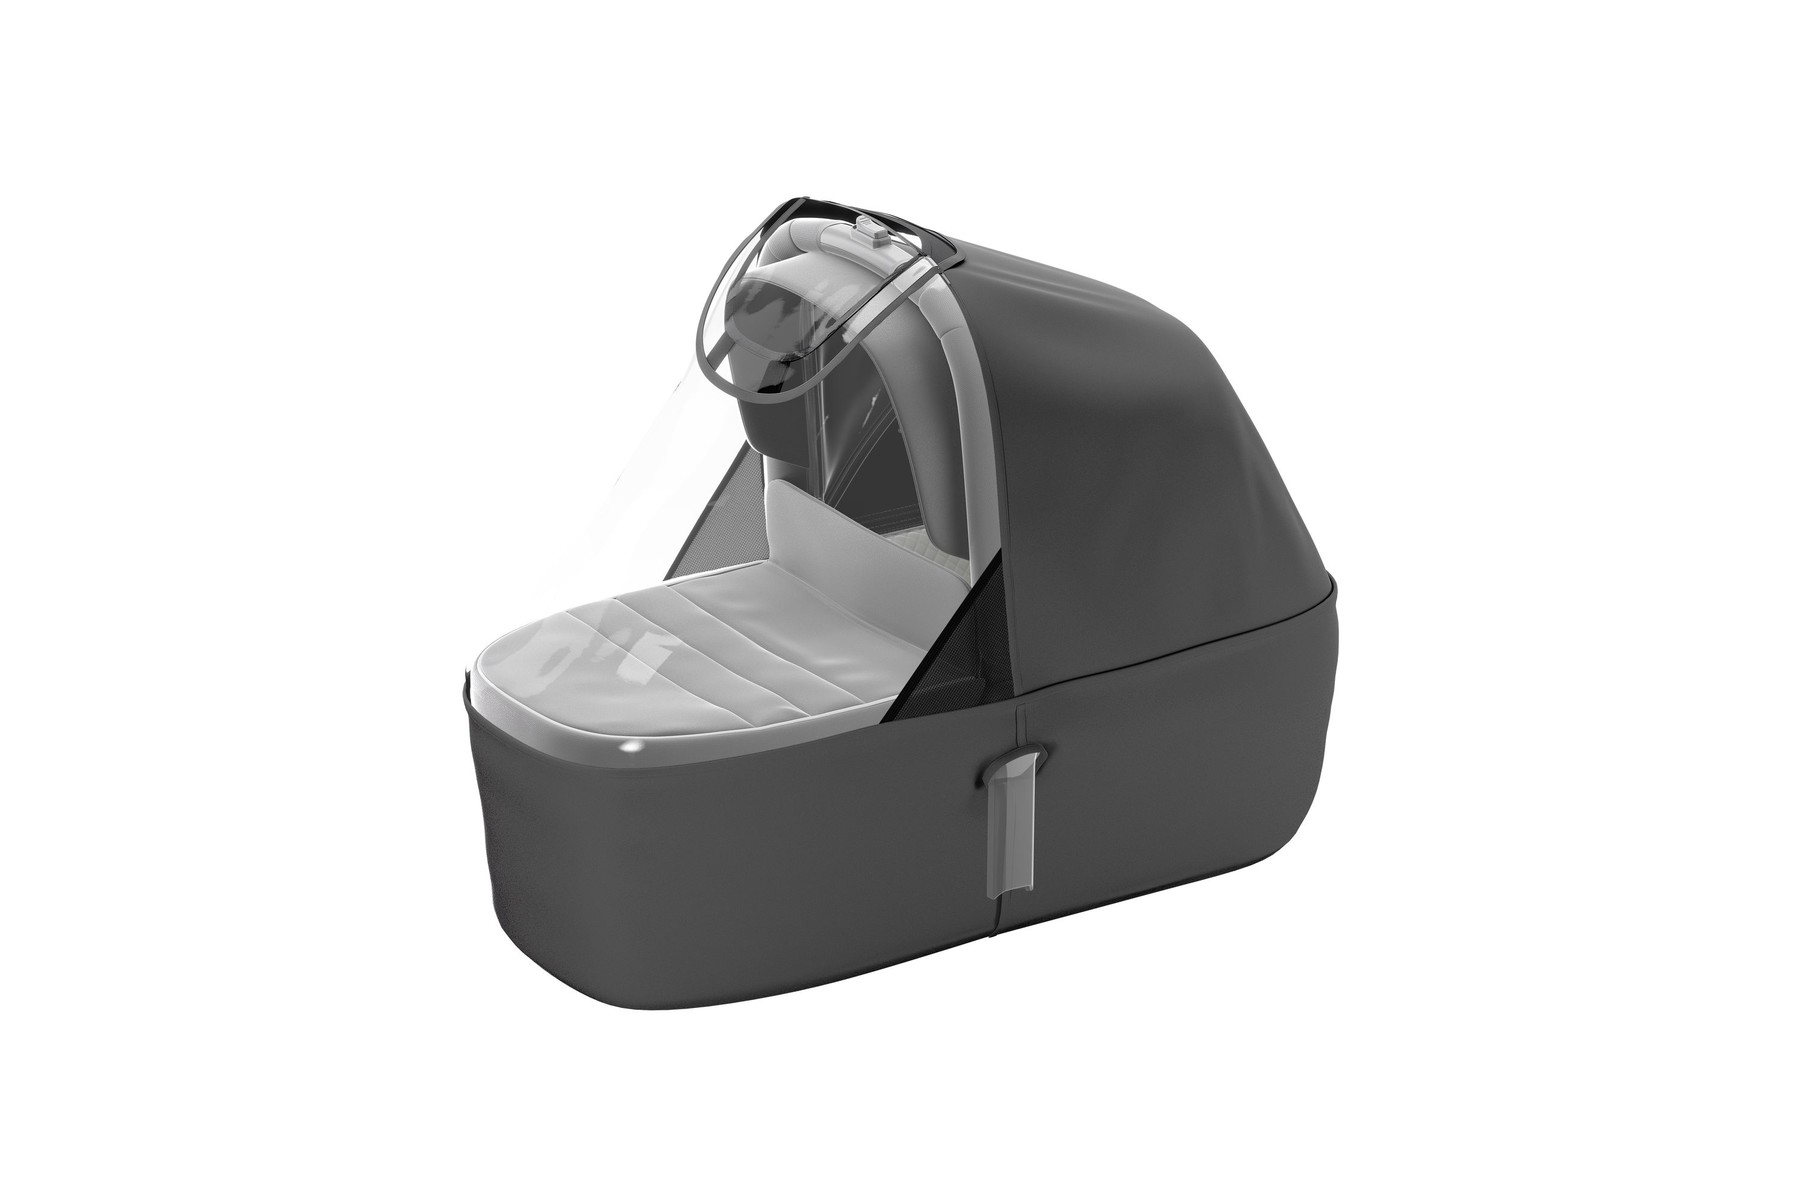 Thule Sleek Bassinet Rain Cover Ghost